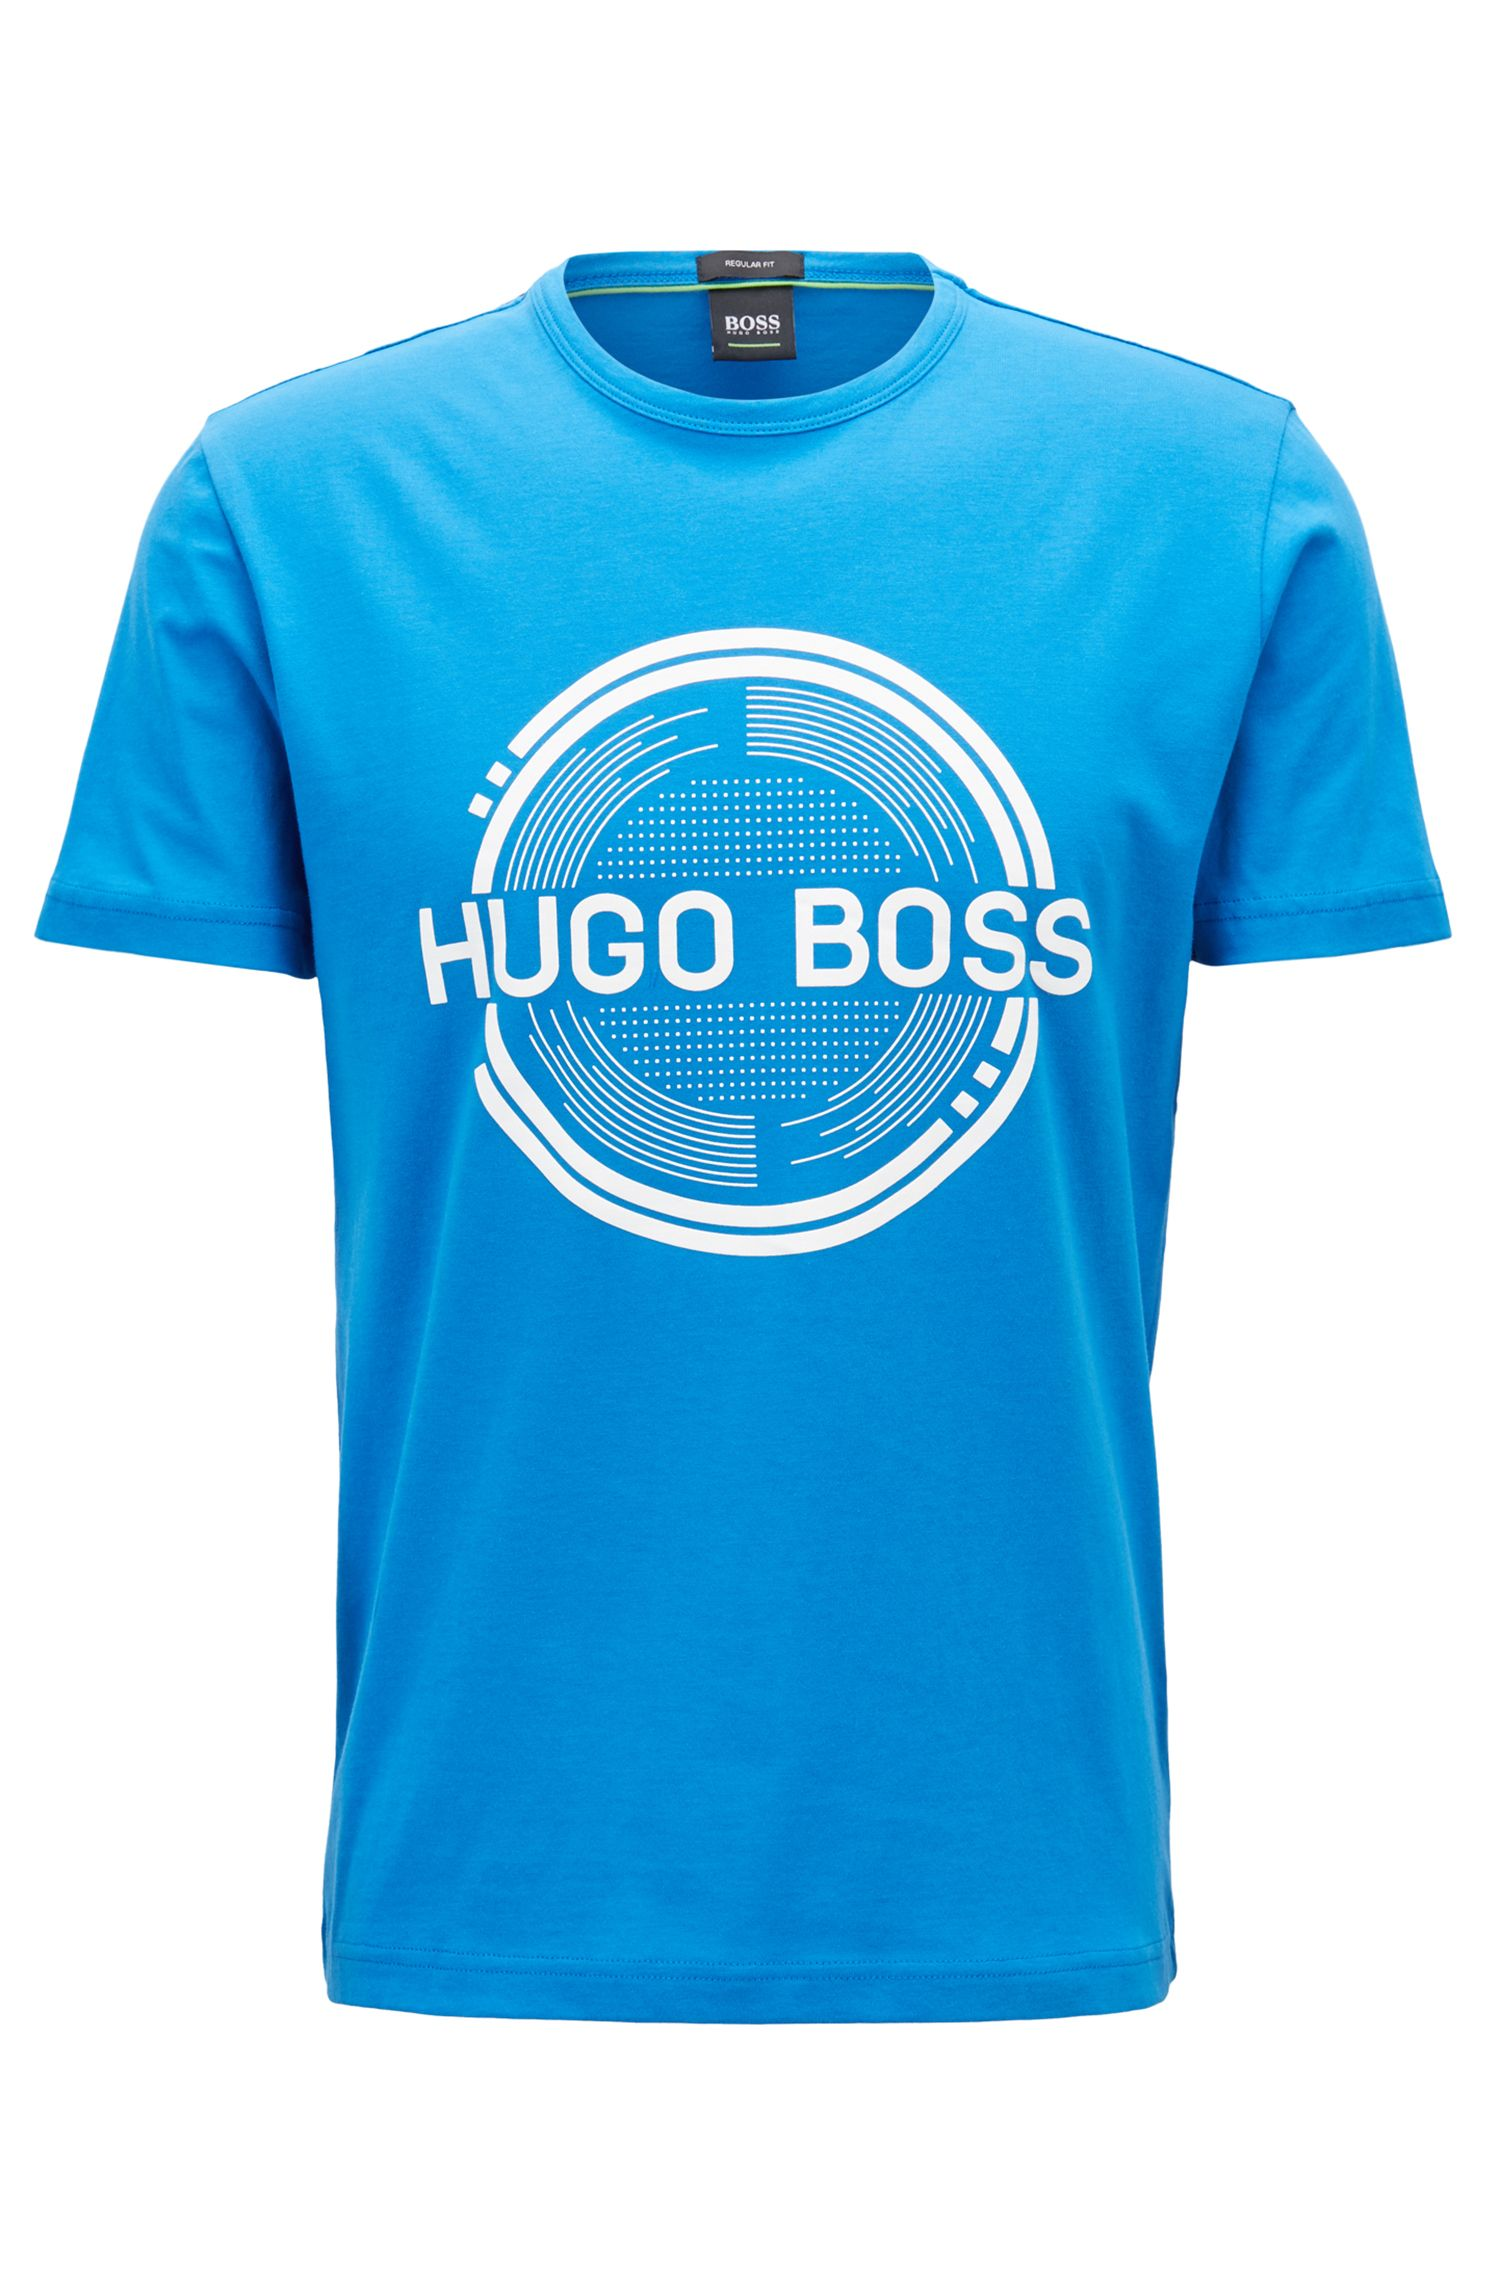 Hugo Boss - Short-sleeved printed T-shirt in single-jersey cotton - 1